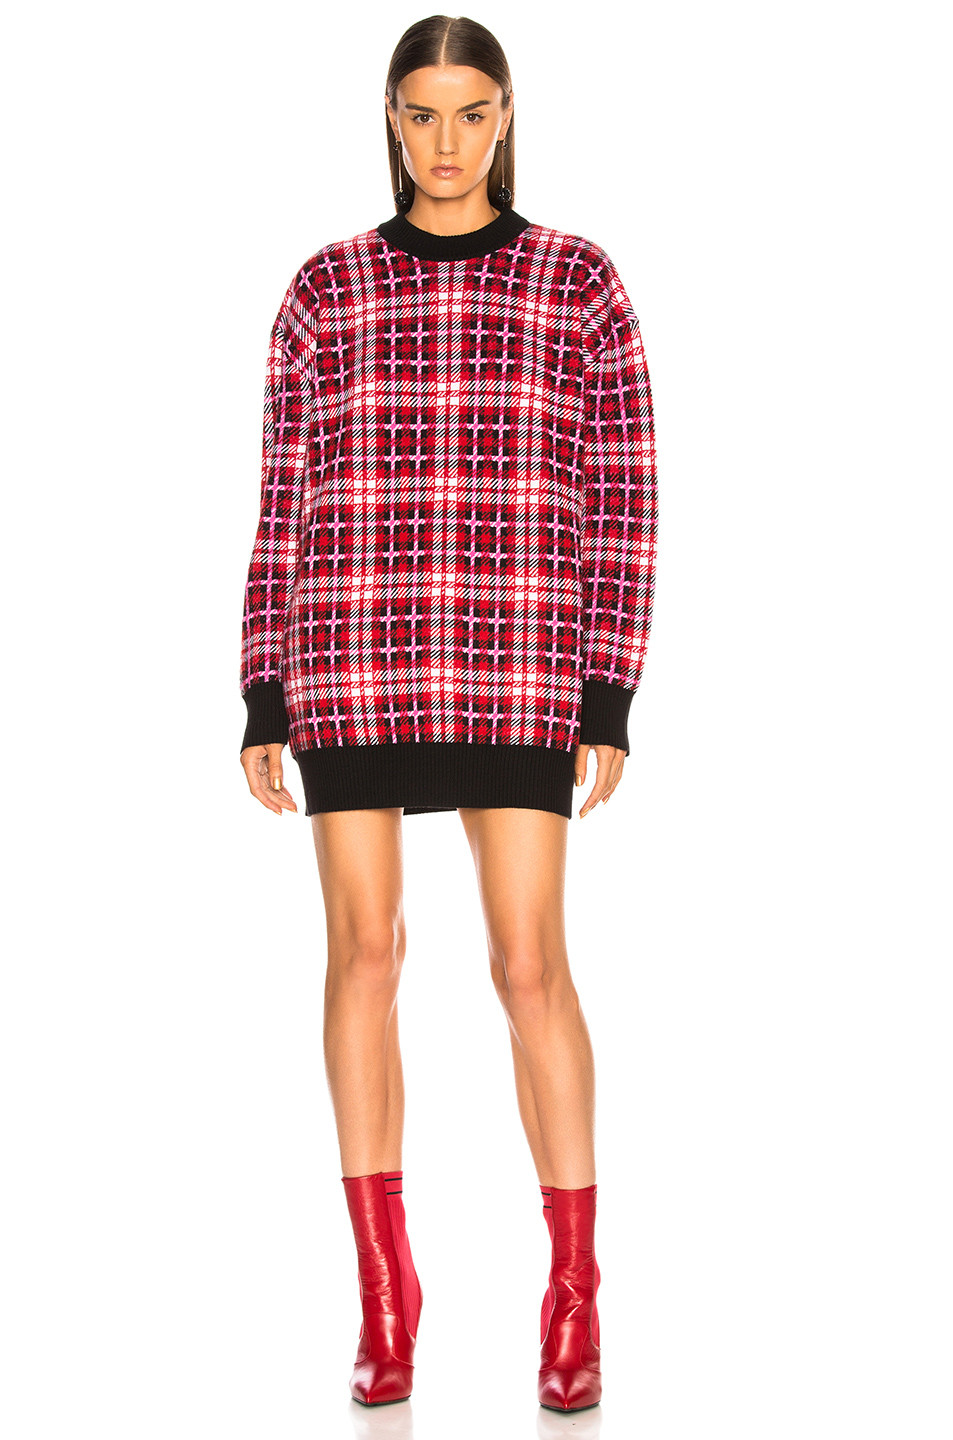 MSGM Checked Oversized Sweater $840